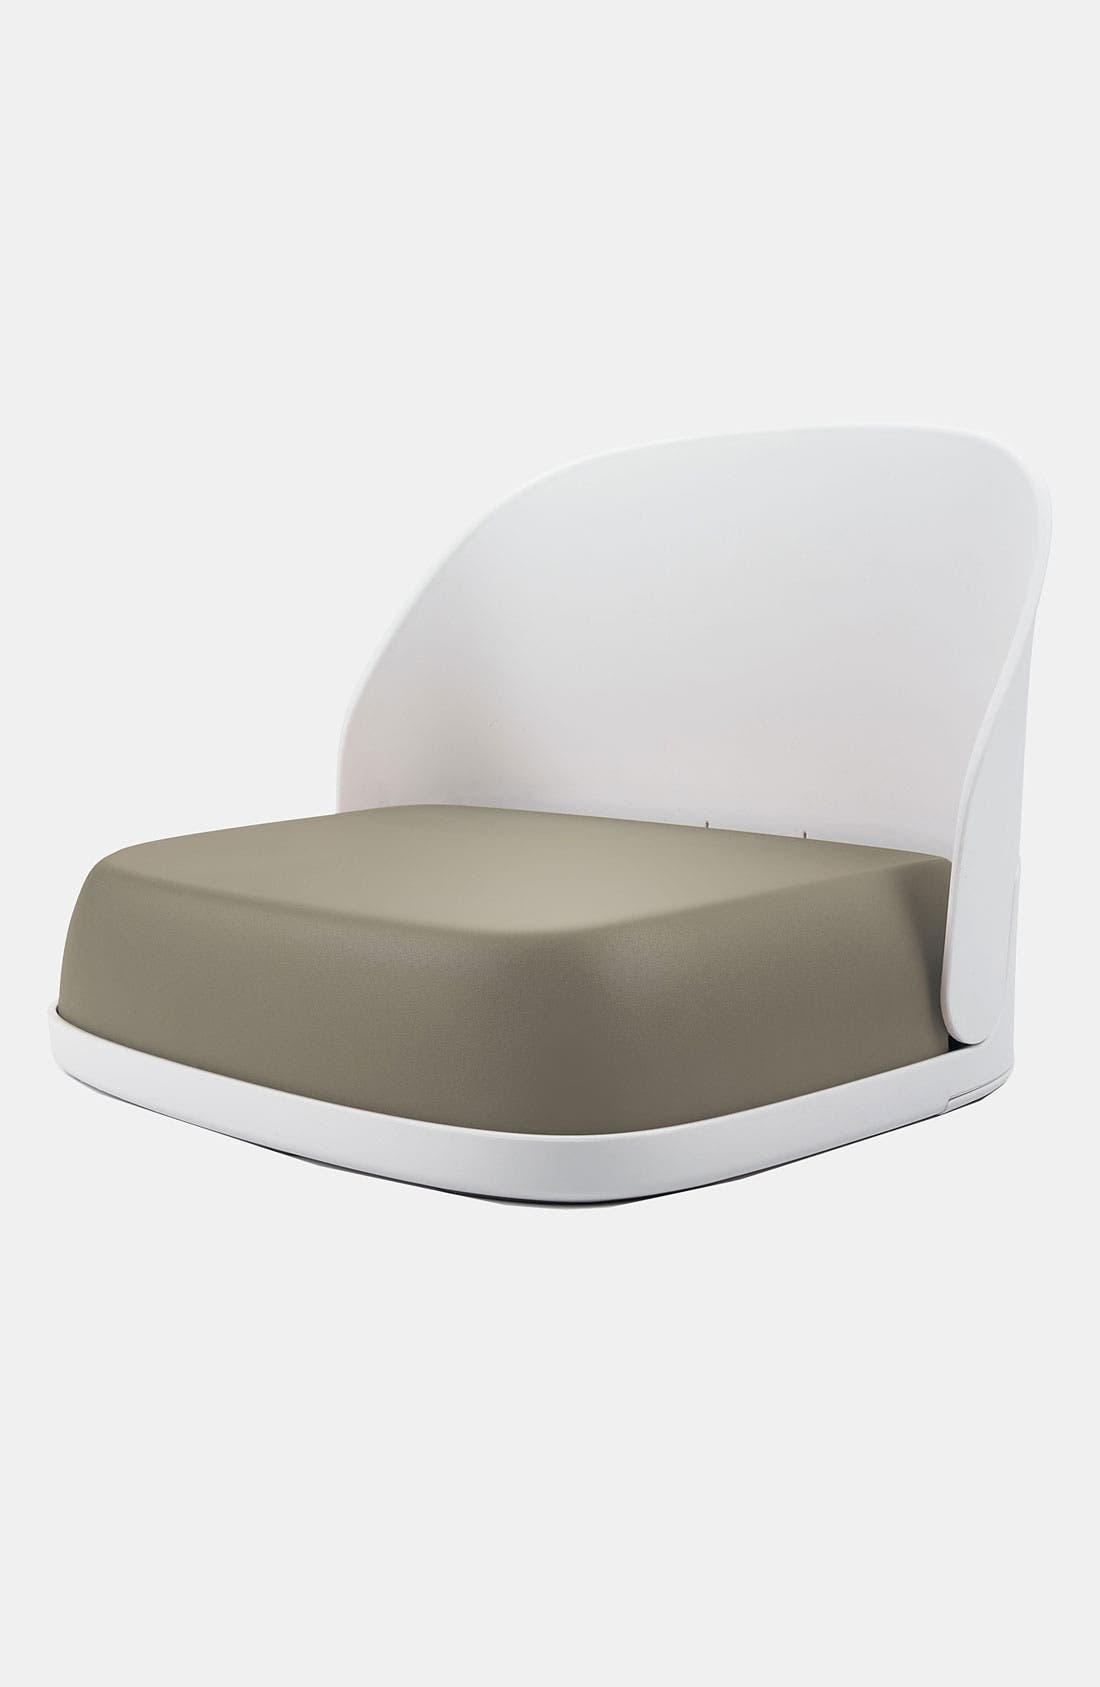 Main Image - OXO Tot Booster Seat